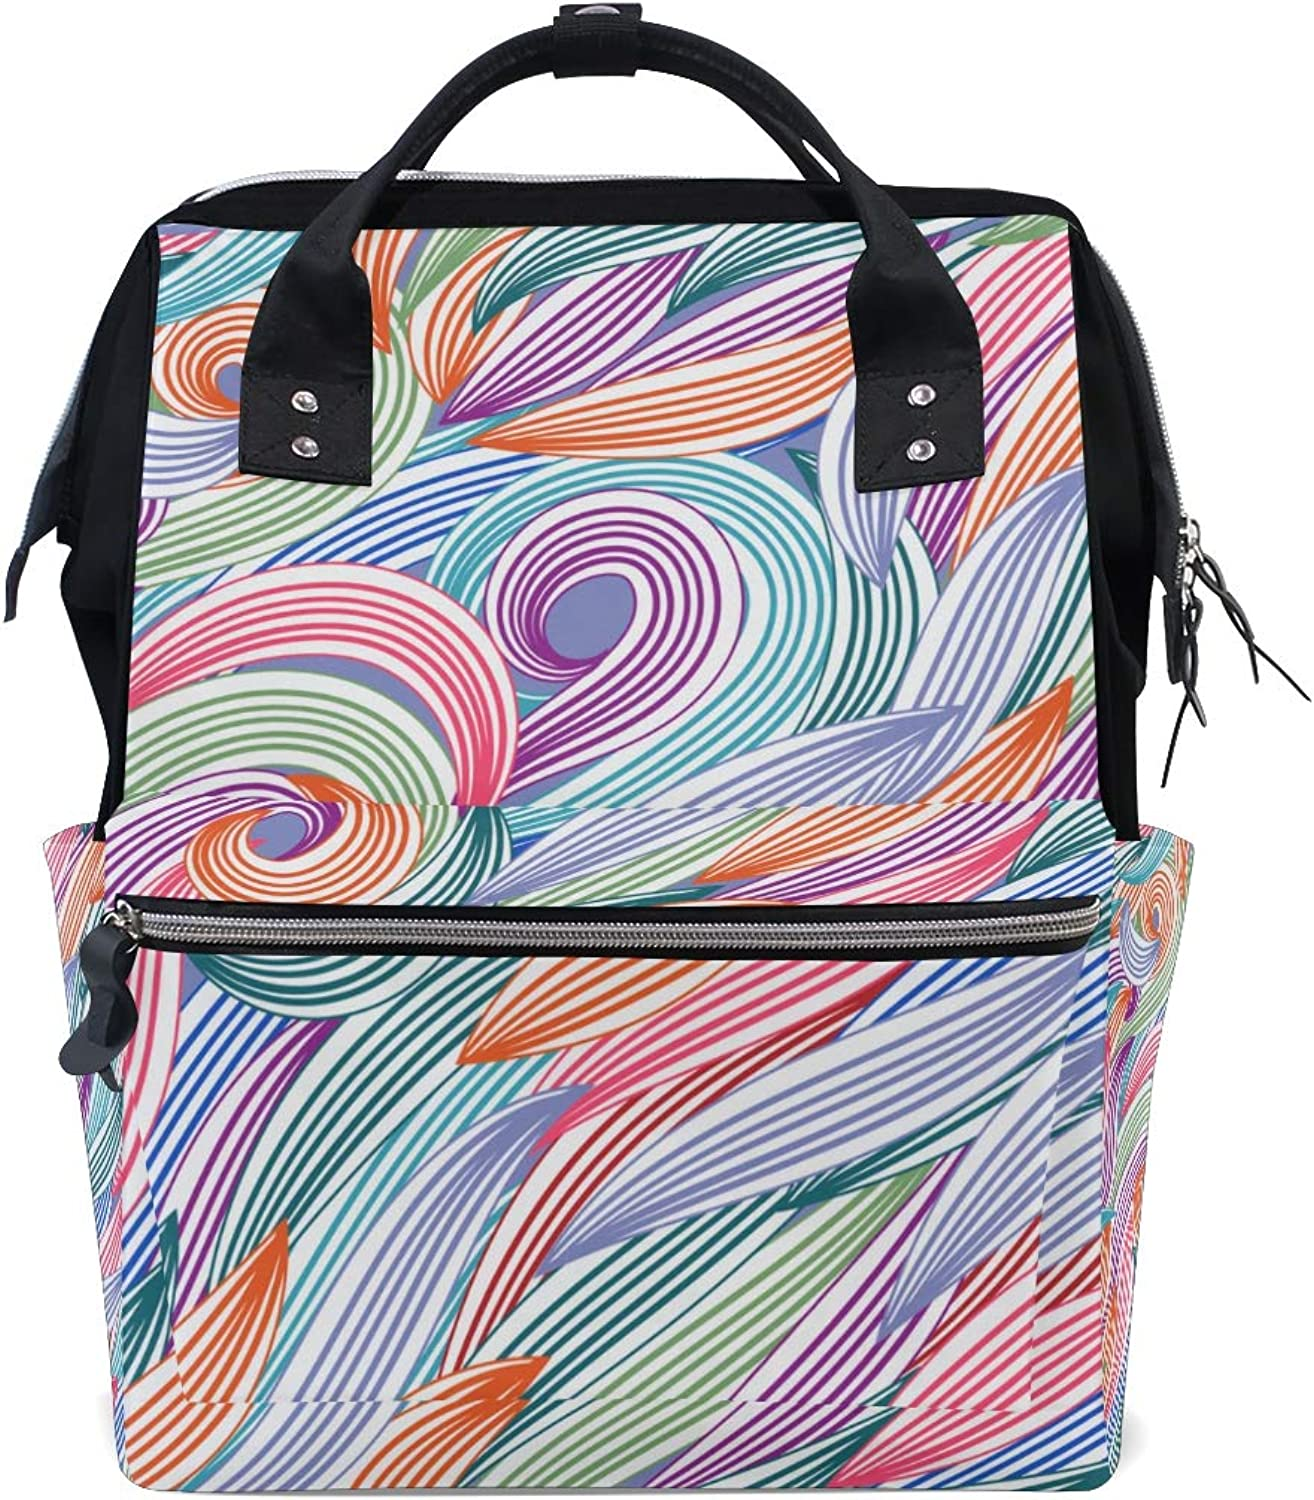 ColourLife Diaper bag Backpack Abstract Flame Tote Bag Casual Daypack Multifunctional Nappy Bags